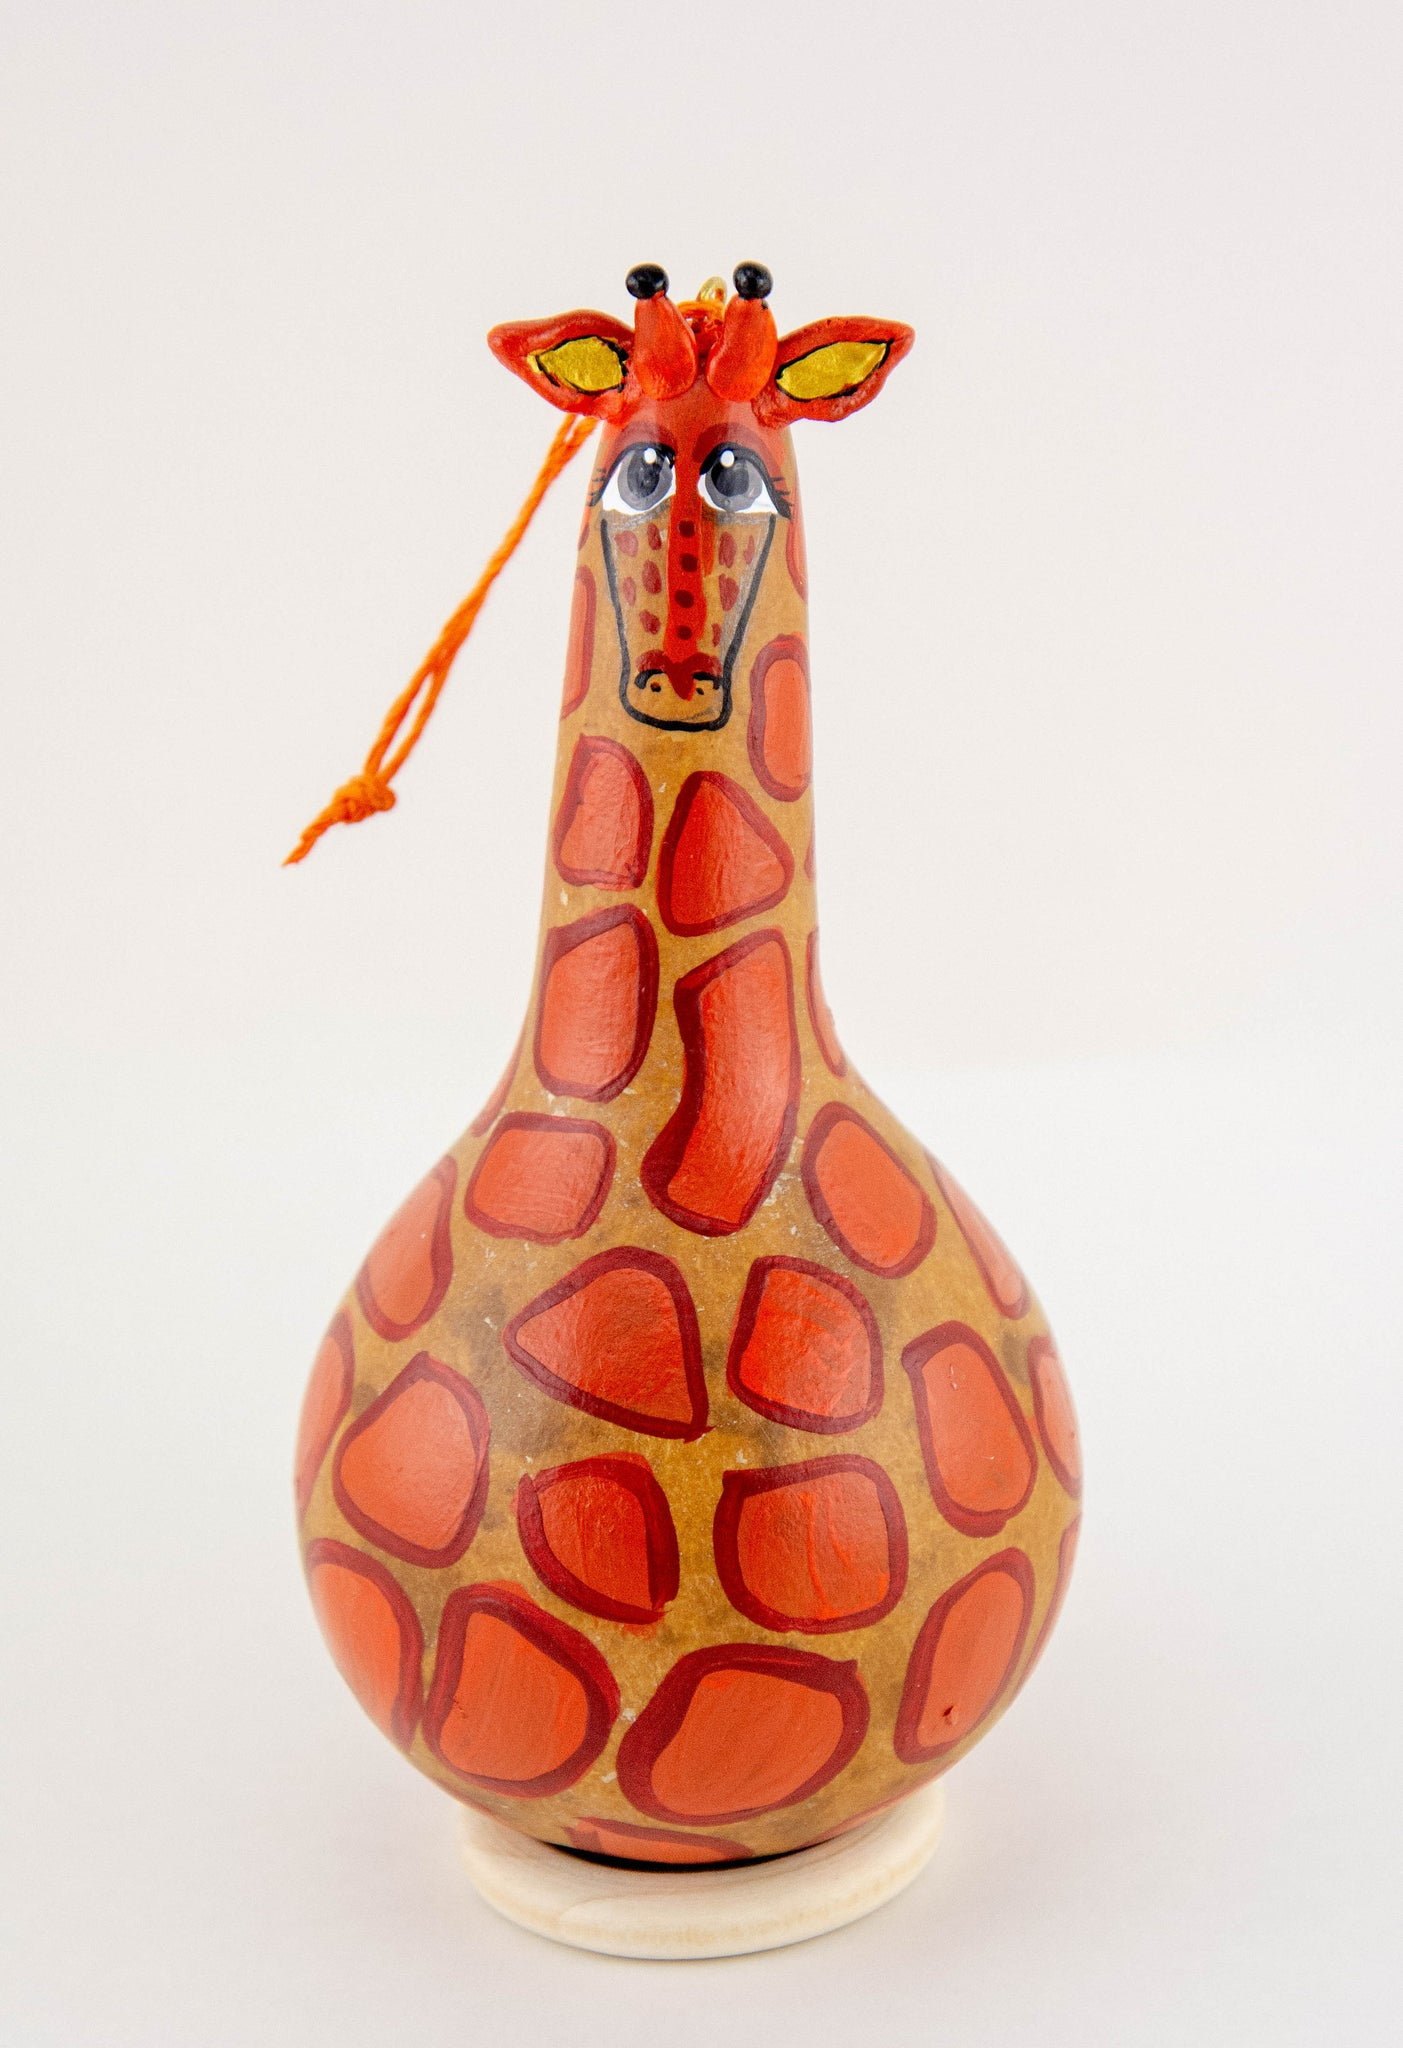 Handmade Giraffe, Christmas Ornament, Giraffe Ornament, Painted Gourd,  Hand Painted Gift, Giraffe Collection, - Gourdaments